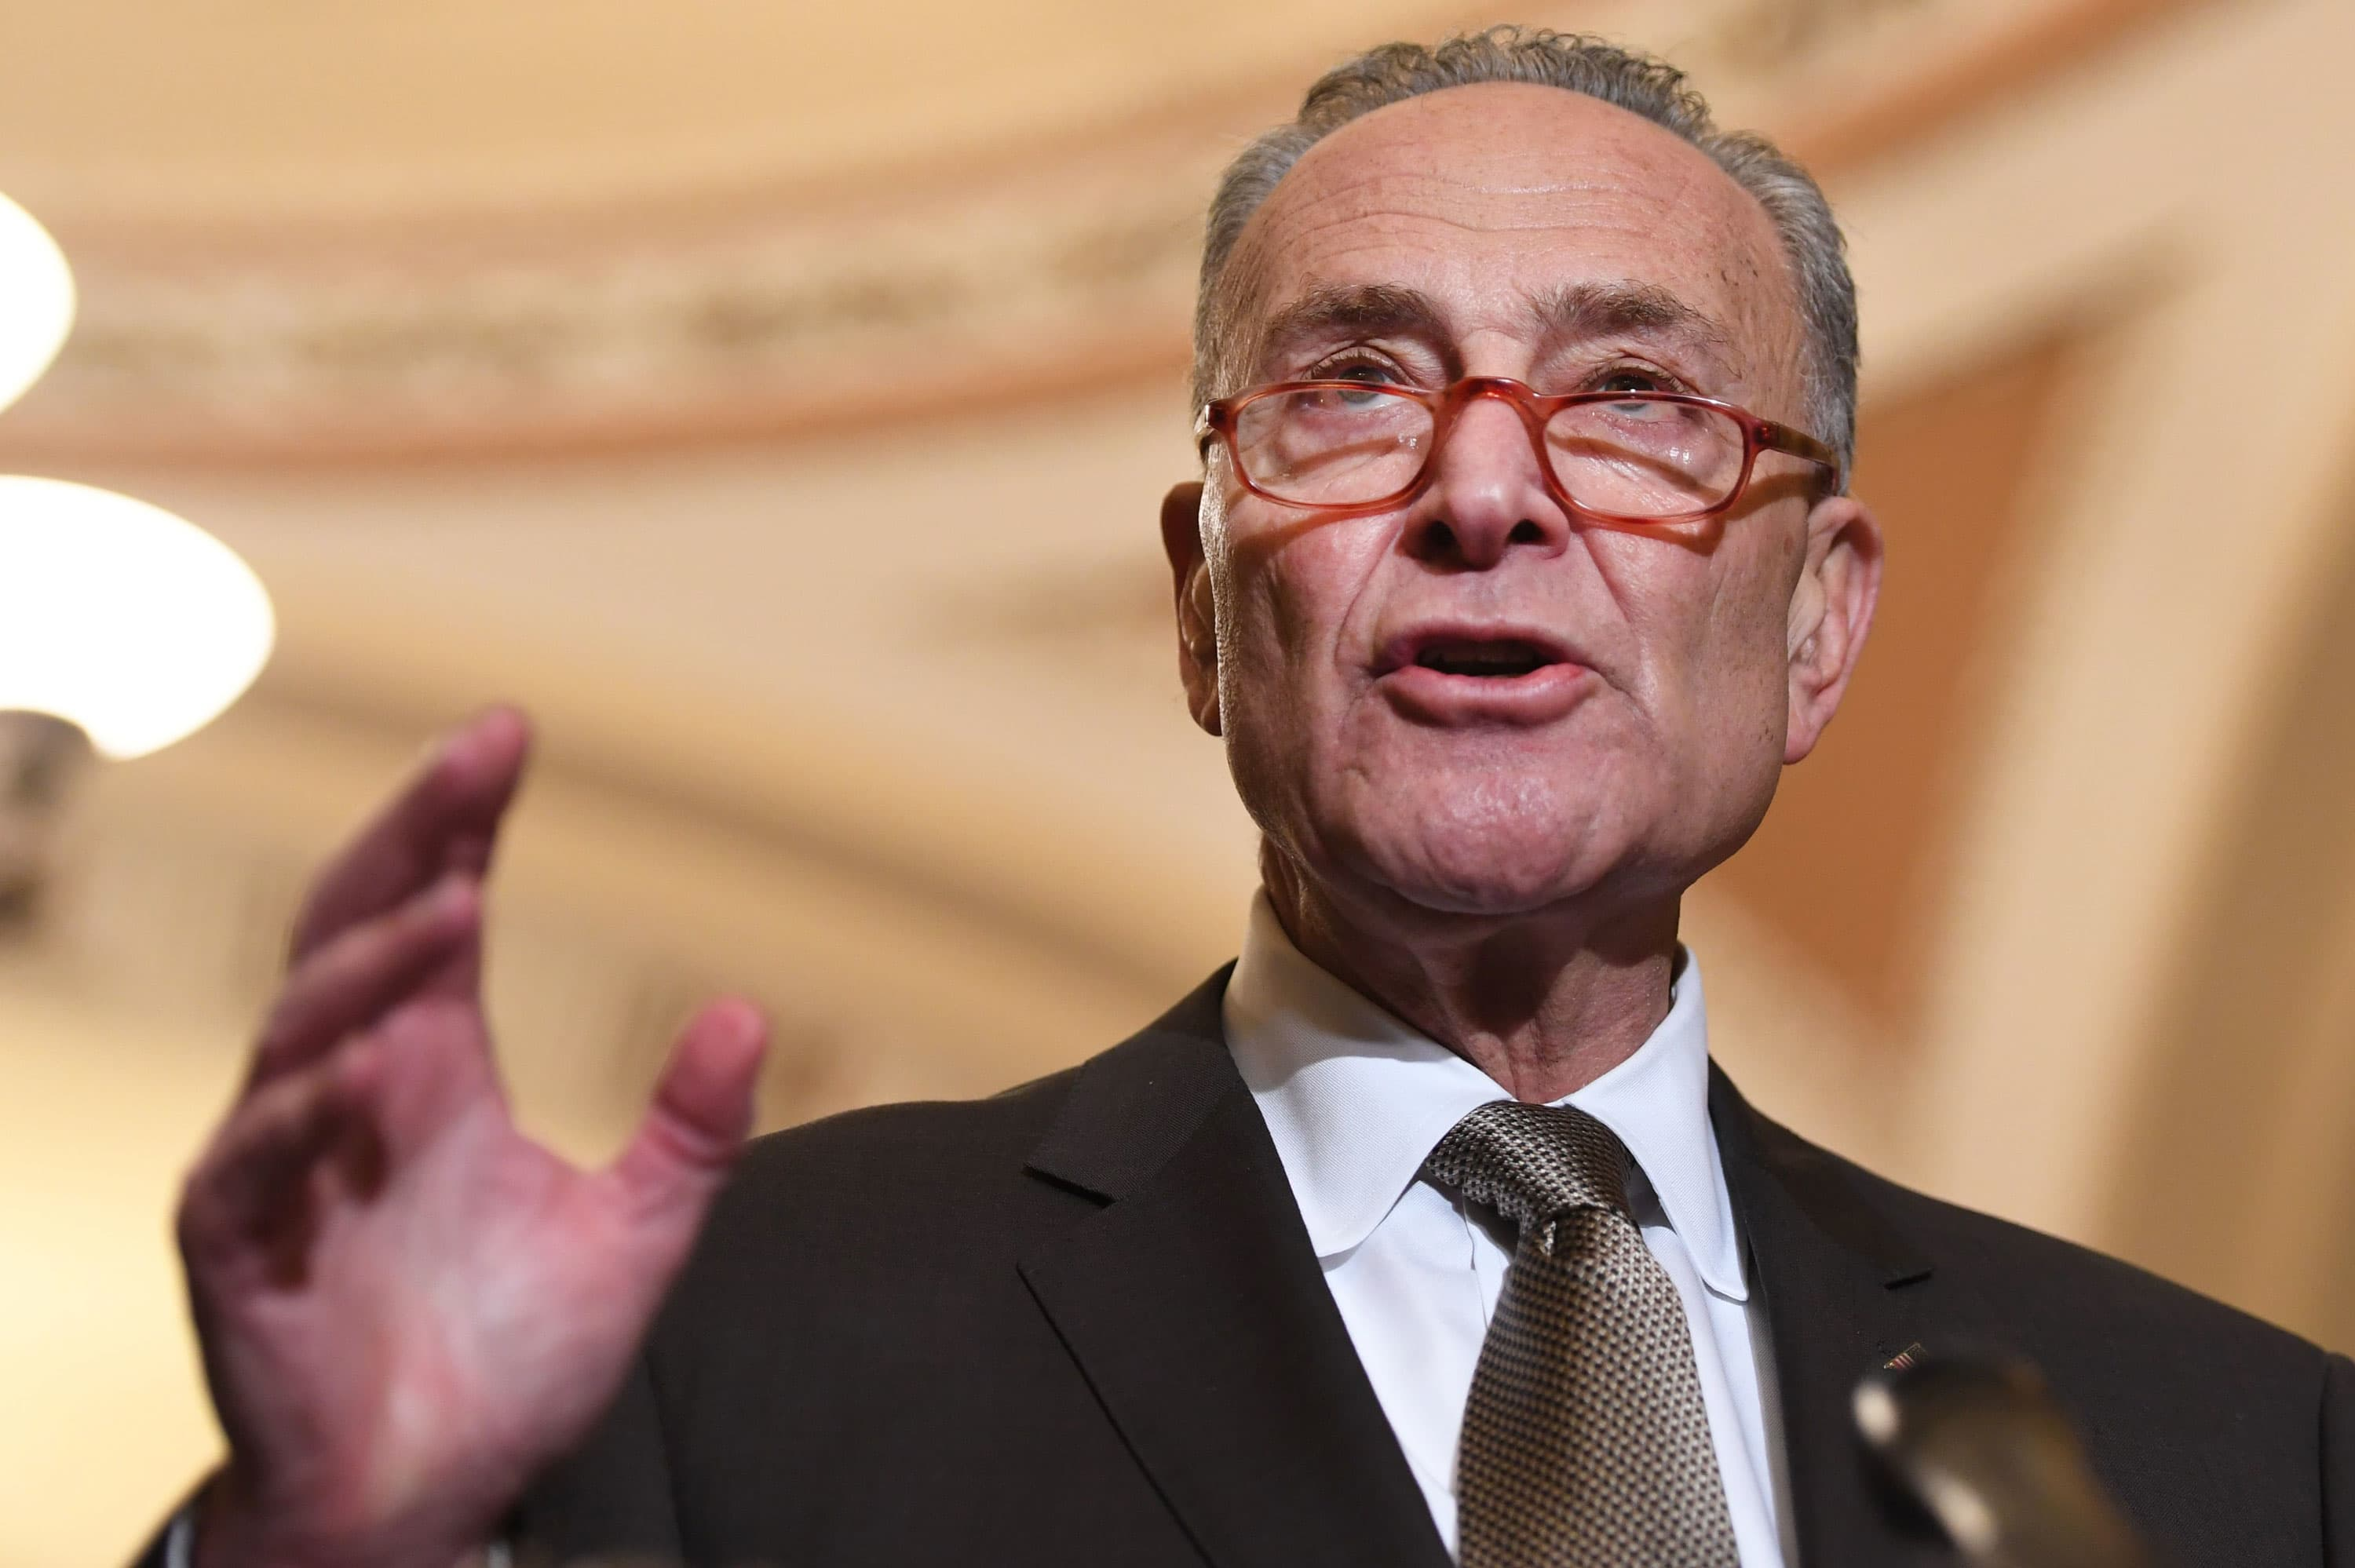 Chuck Schumer, one of Trump's biggest Democratic cheerleaders on China, says president 'sold out' in phase one deal